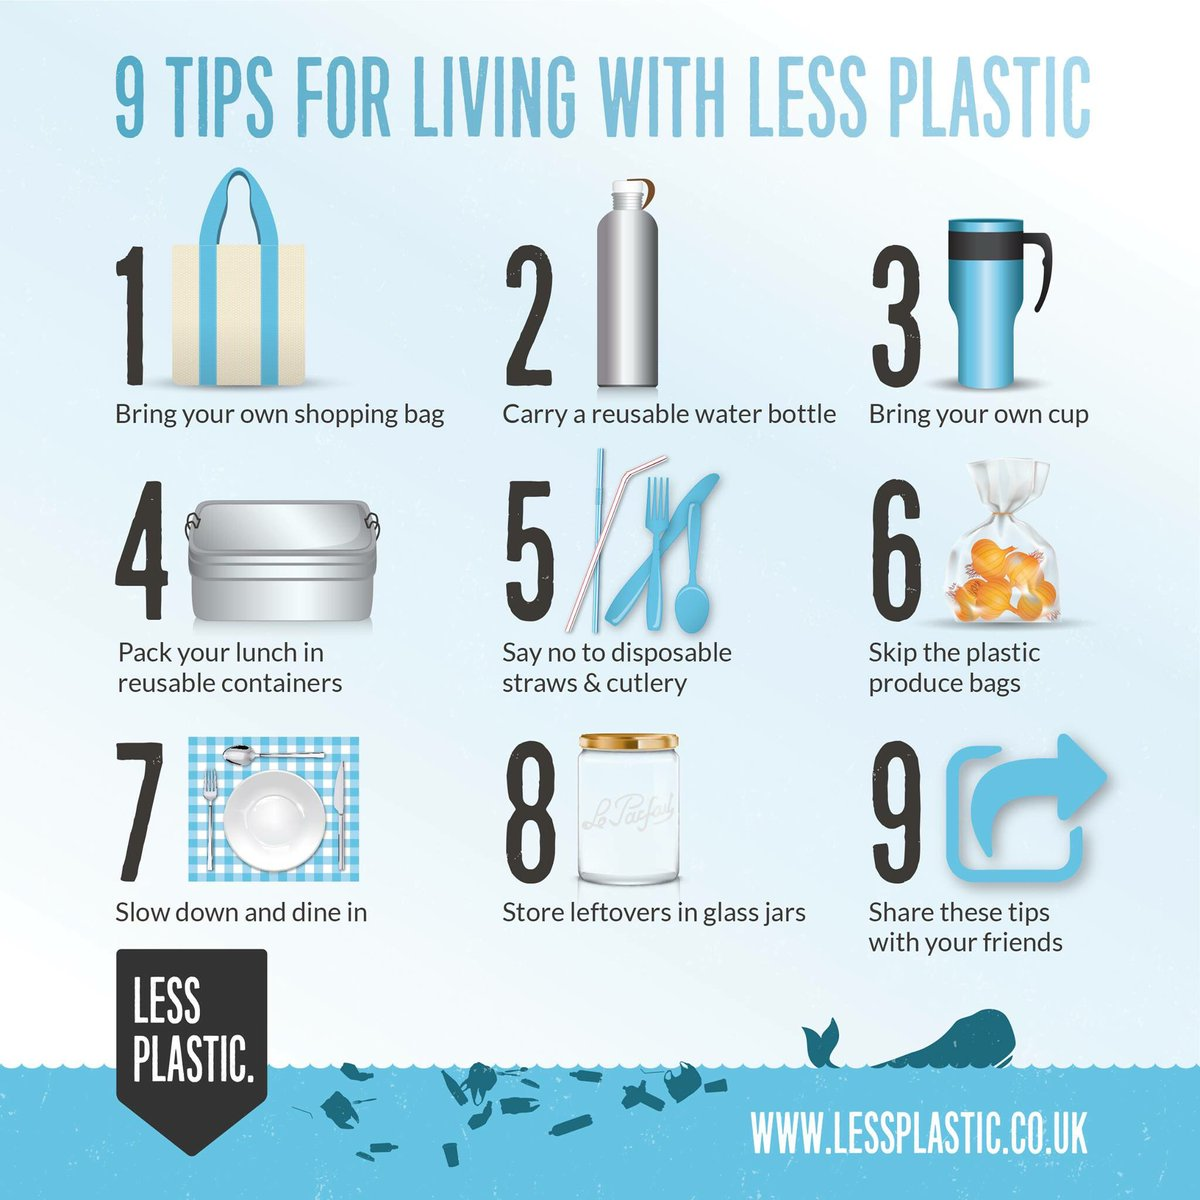 9 tips for living with less plastic.jpg